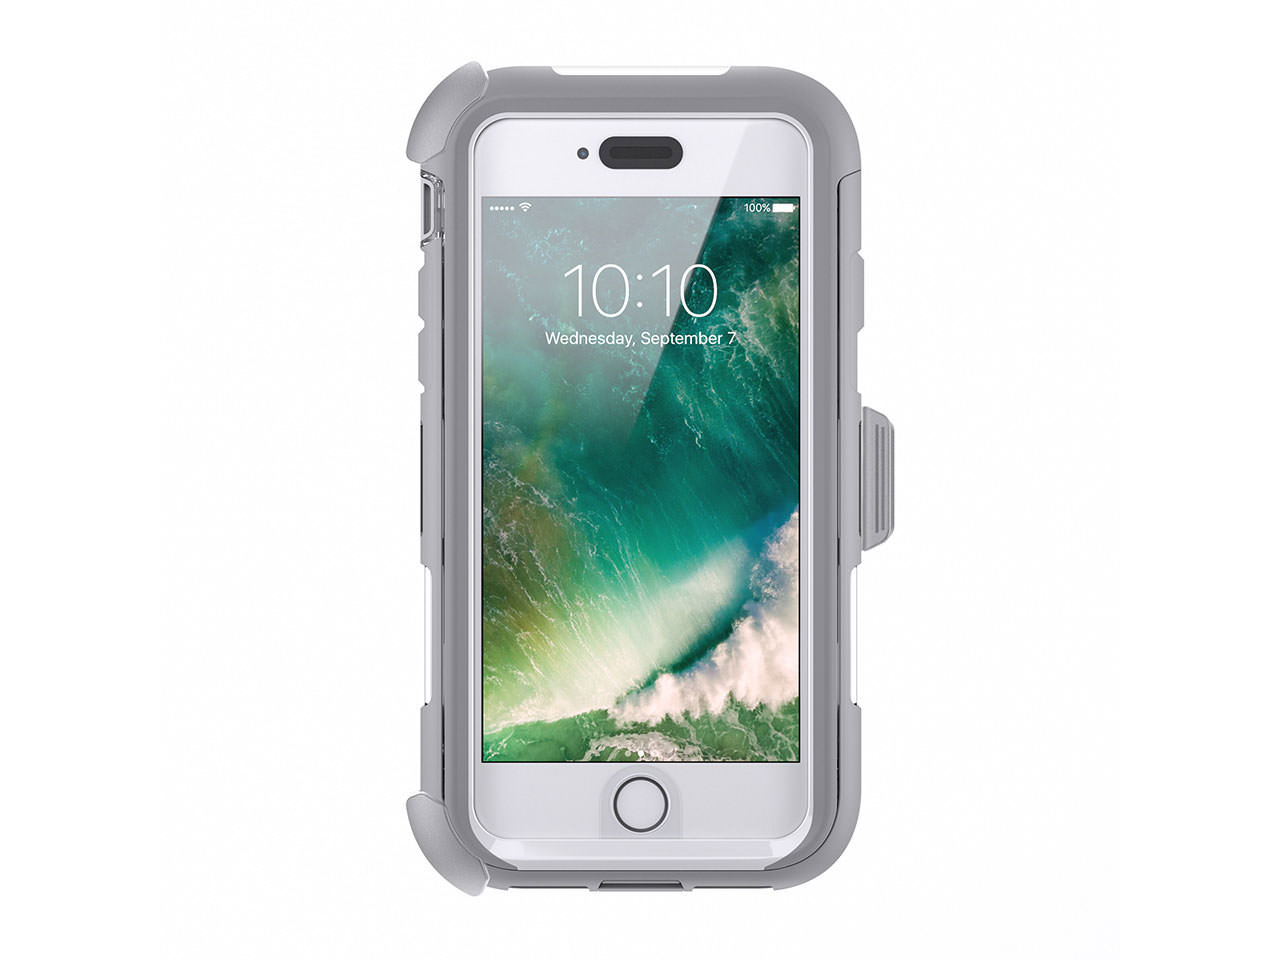 low priced f53e4 75665 Griffin Griffin iPhone 7 Rugged Case, Survivor Extreme Impact Resistant  Case w/ Holster, Maximum Drop Protection & Rain-Proof Case for iPhone 7